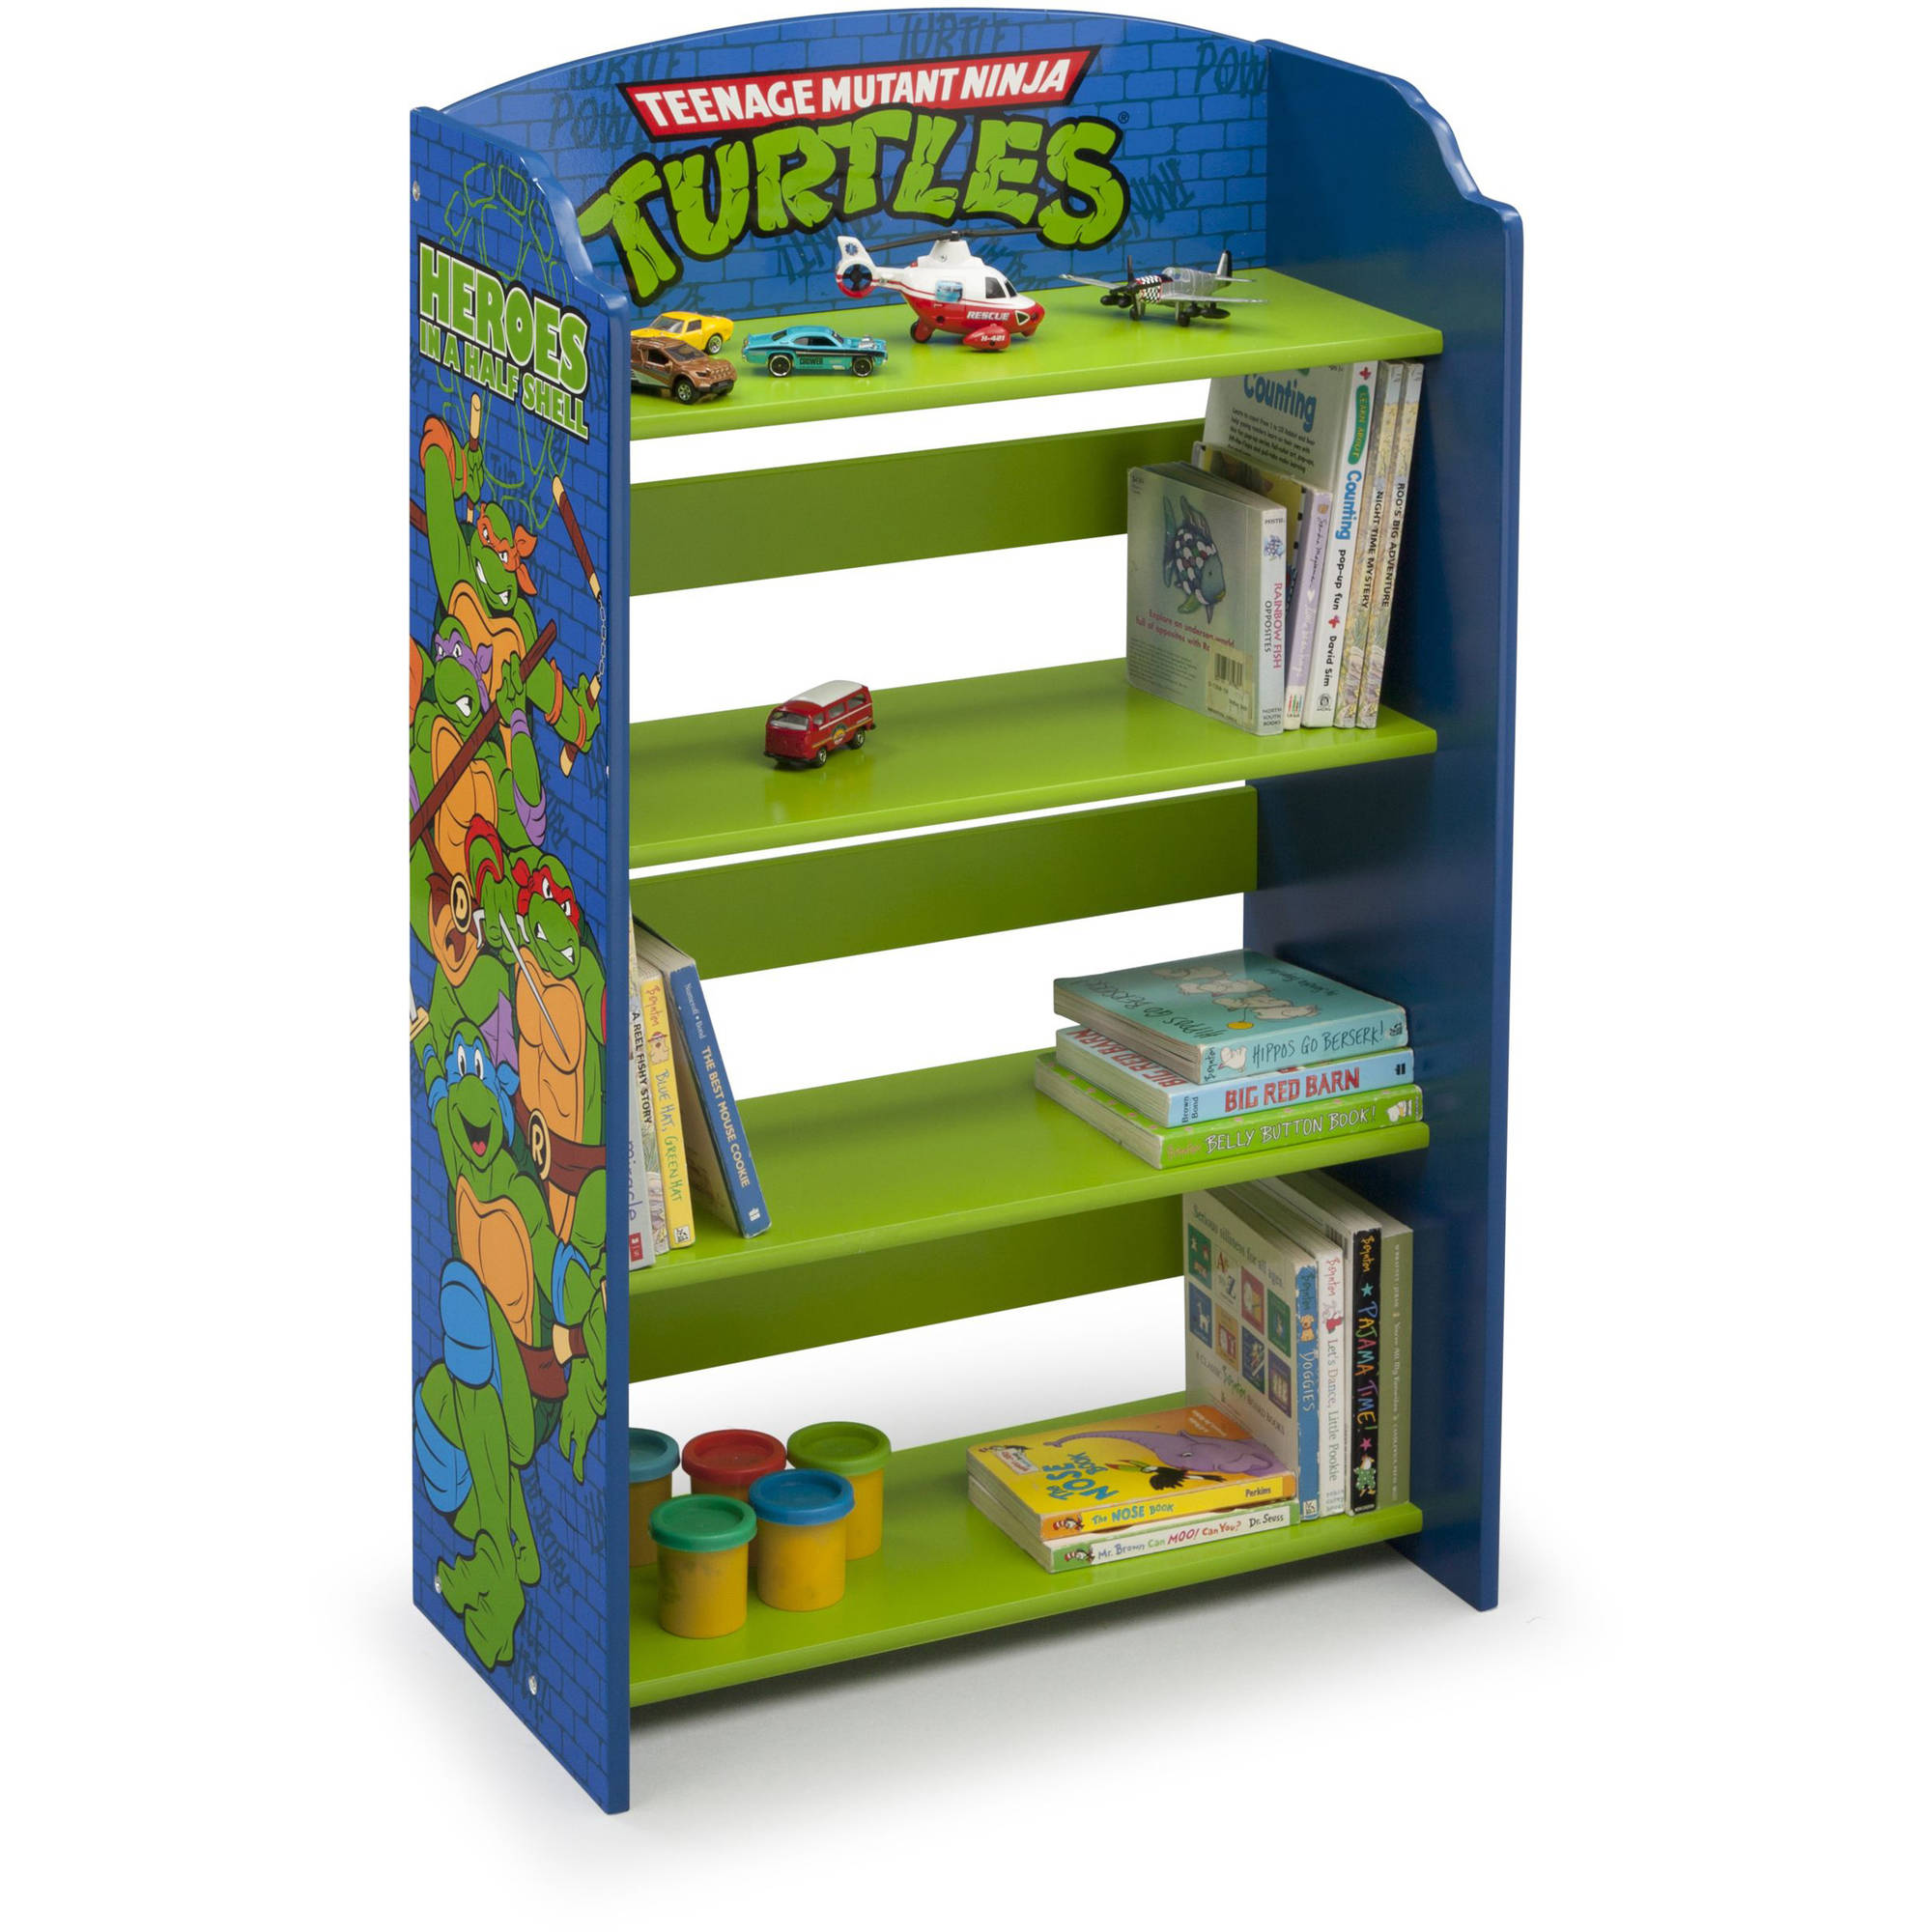 Ninja Turtle Bedroom Delta Children Nickelodeon Teenage Mutant Ninja Turtles Bookshelf